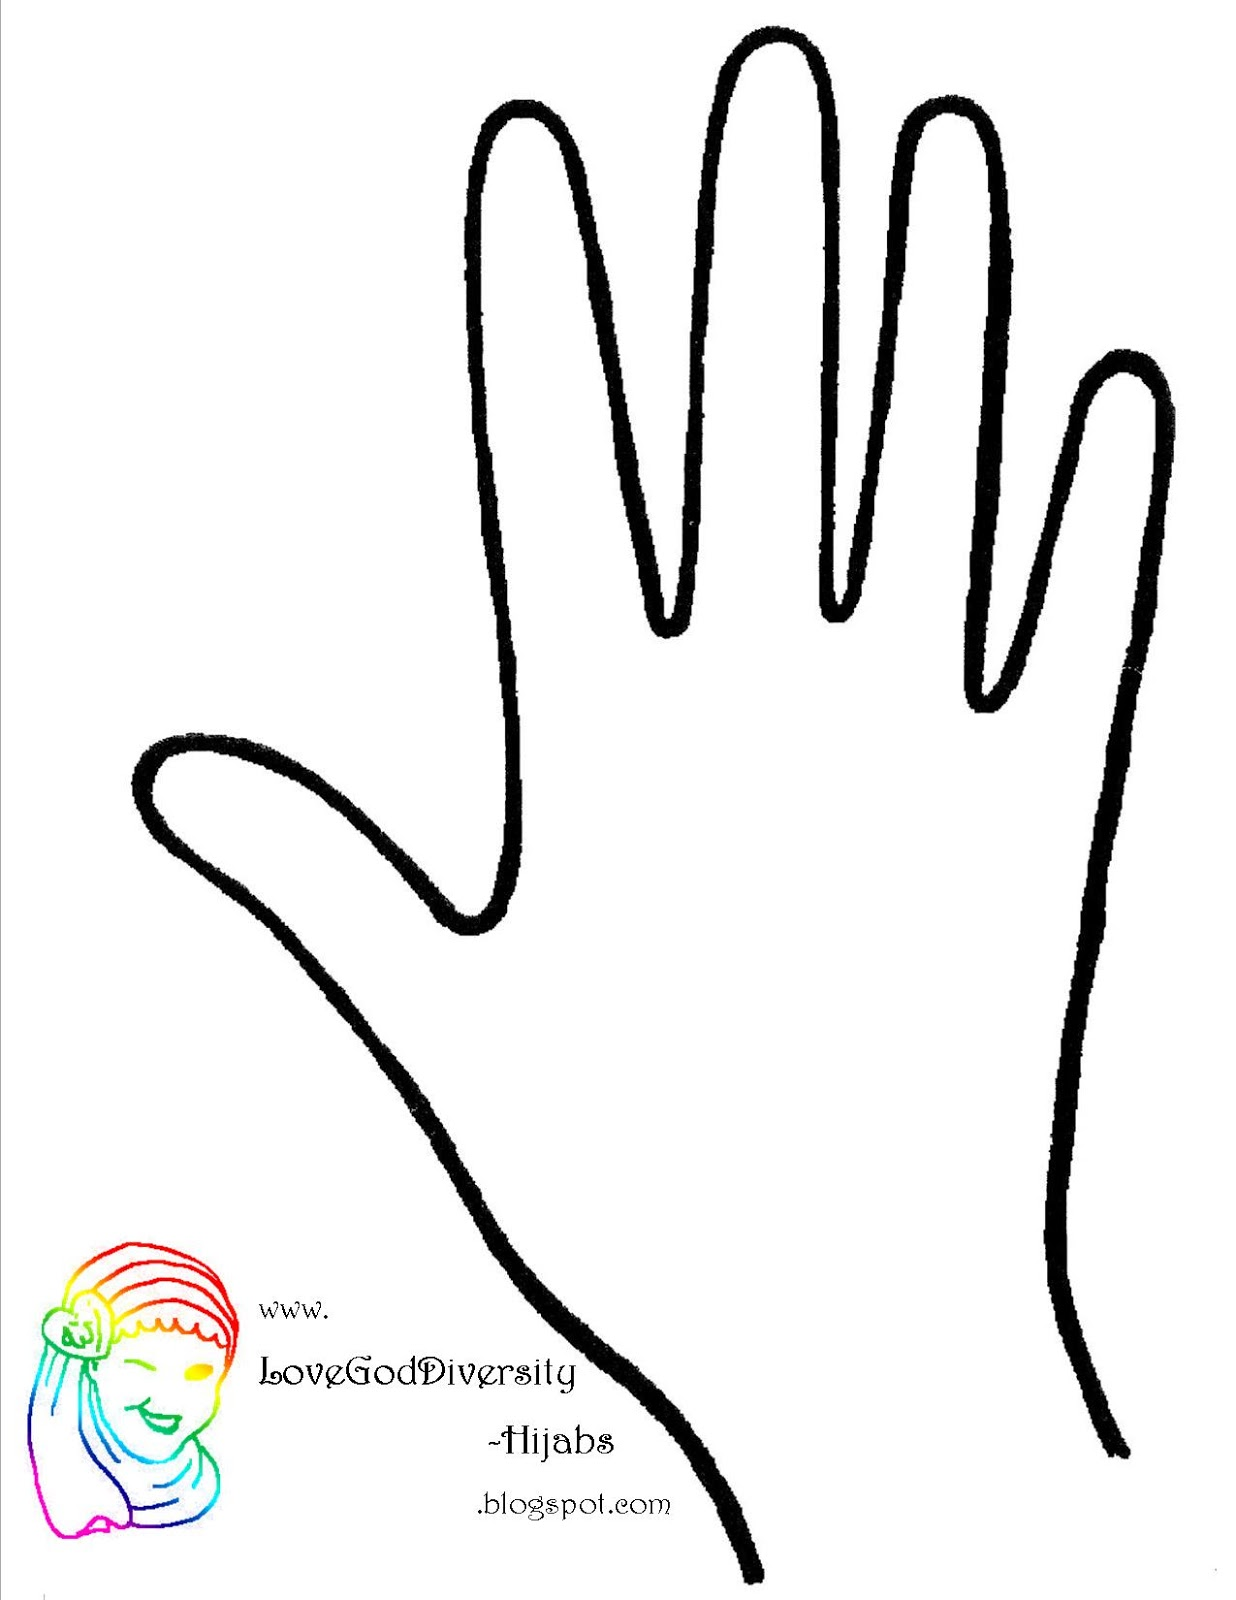 graphic regarding Hand Printable titled Handprint Template Cost-free obtain simplest Handprint Template